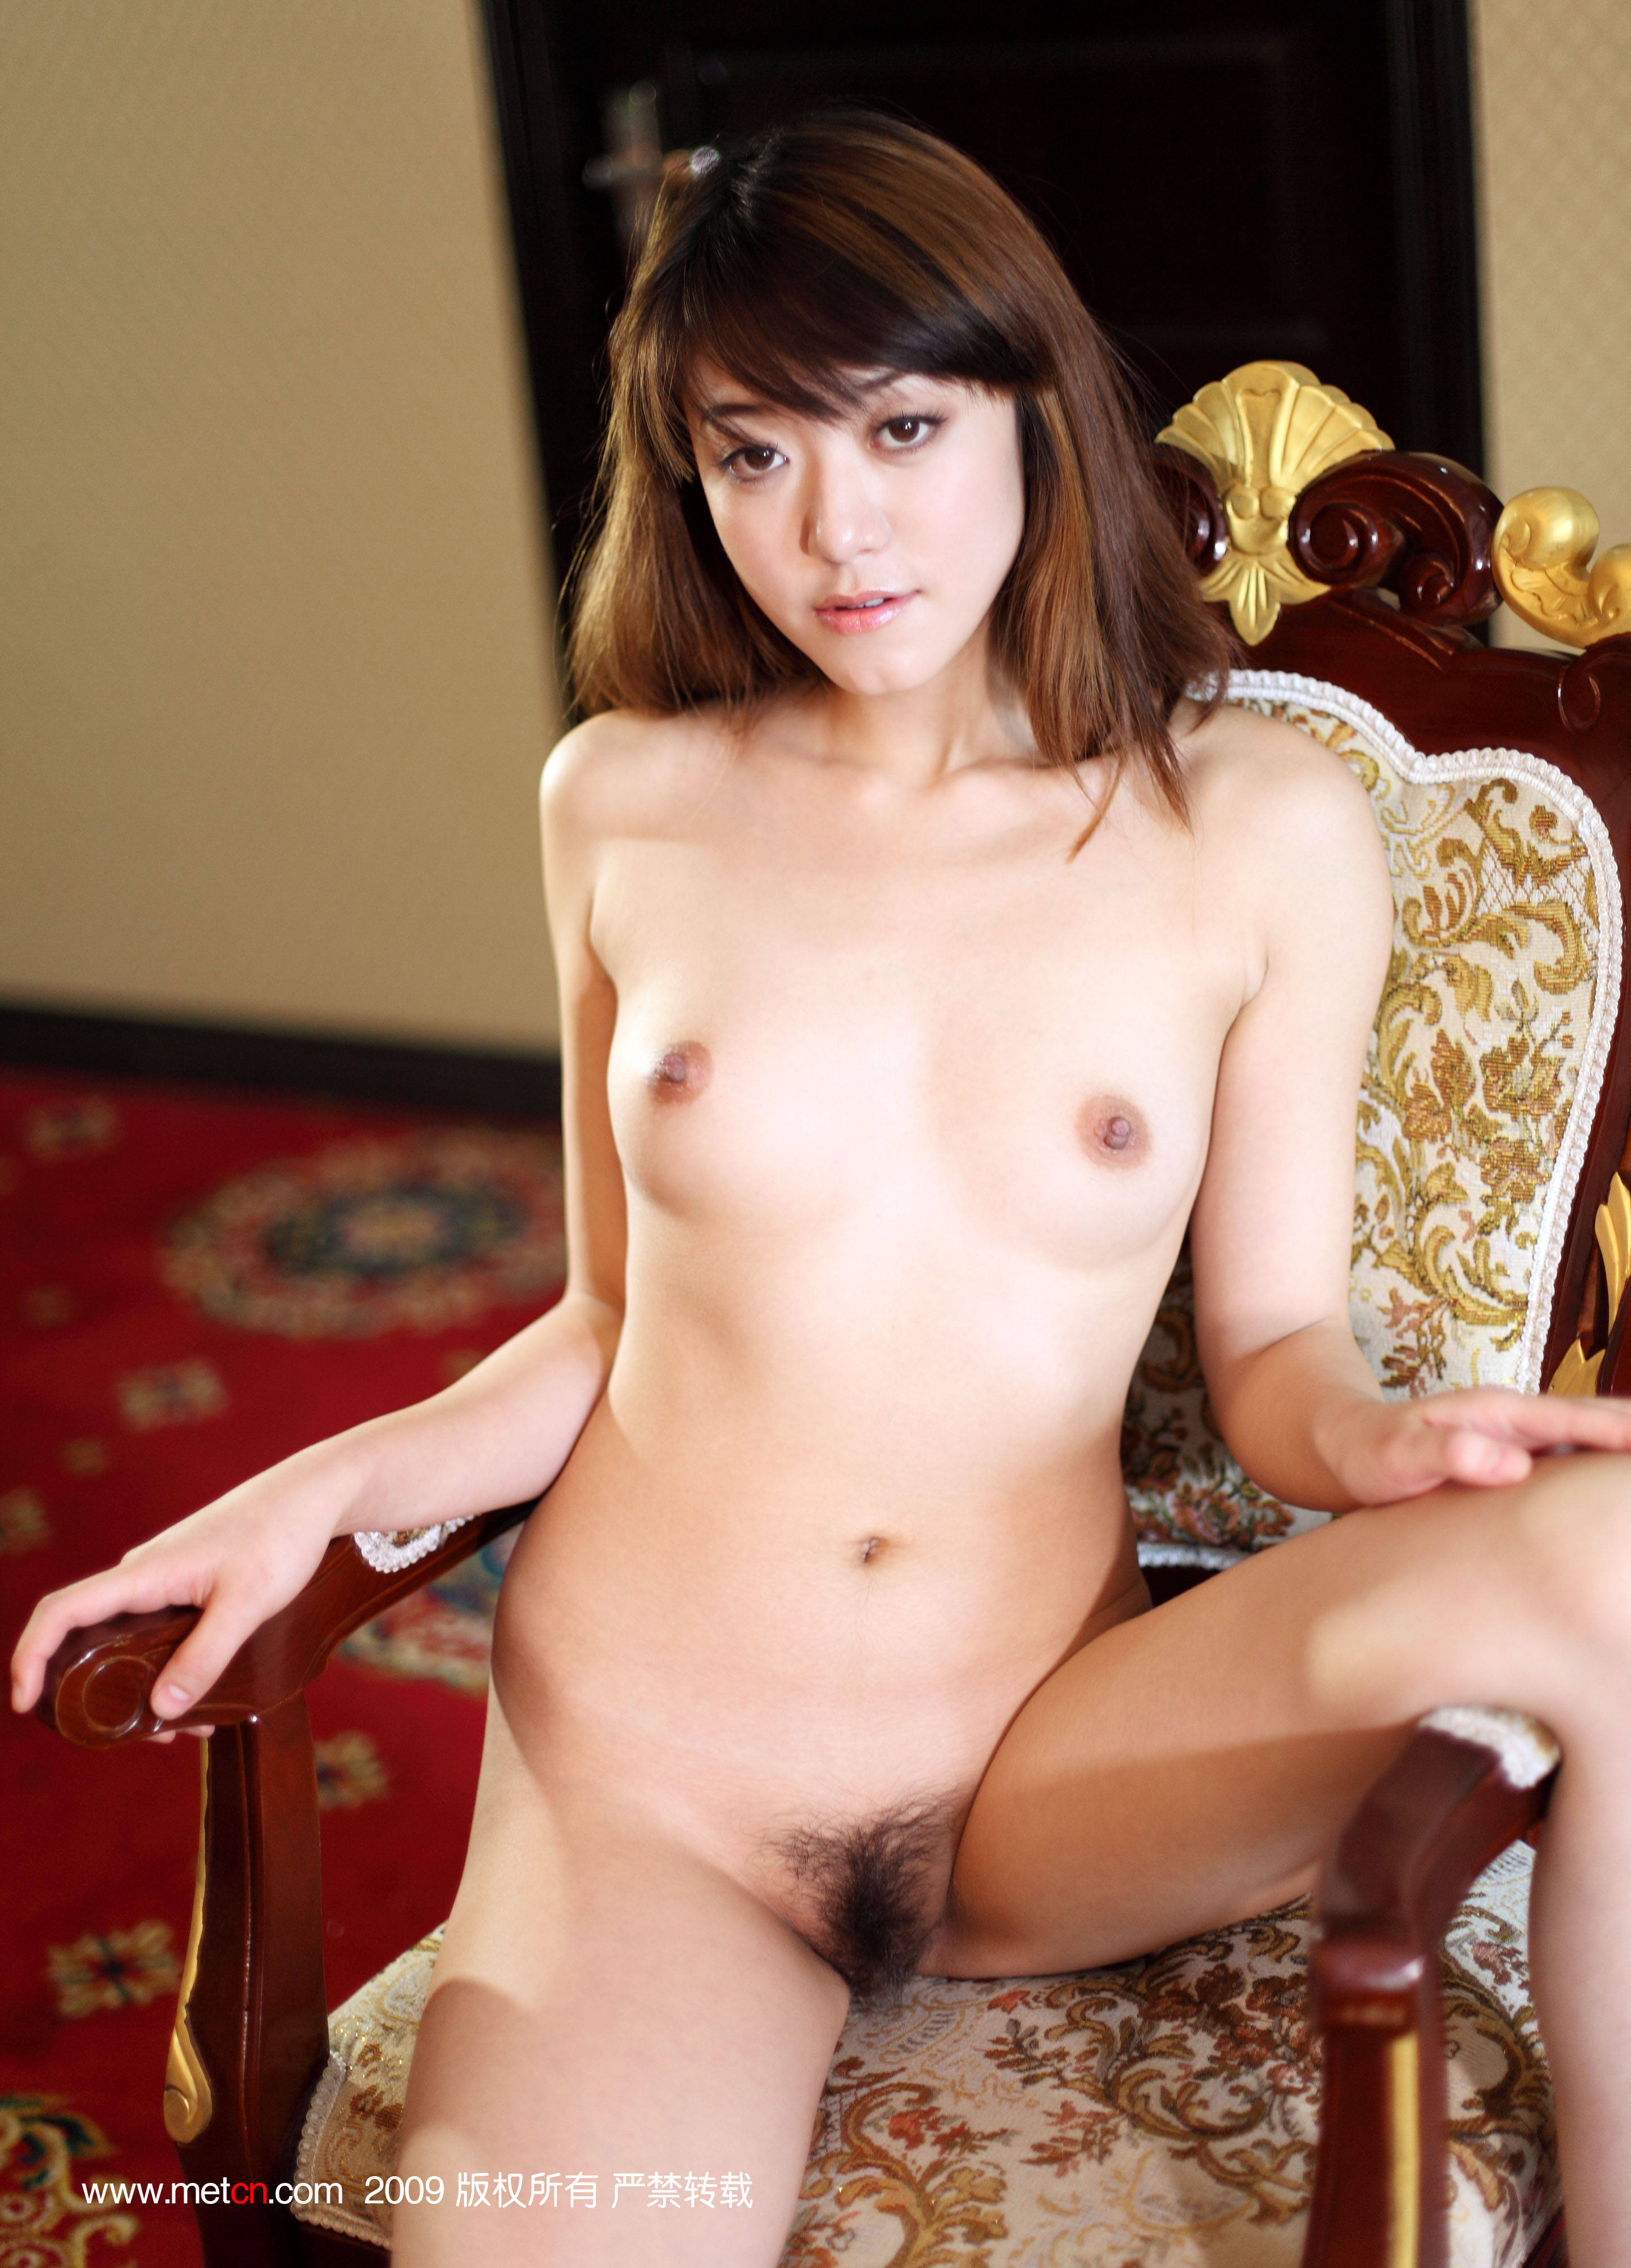 Asian sexy nude photo-7708